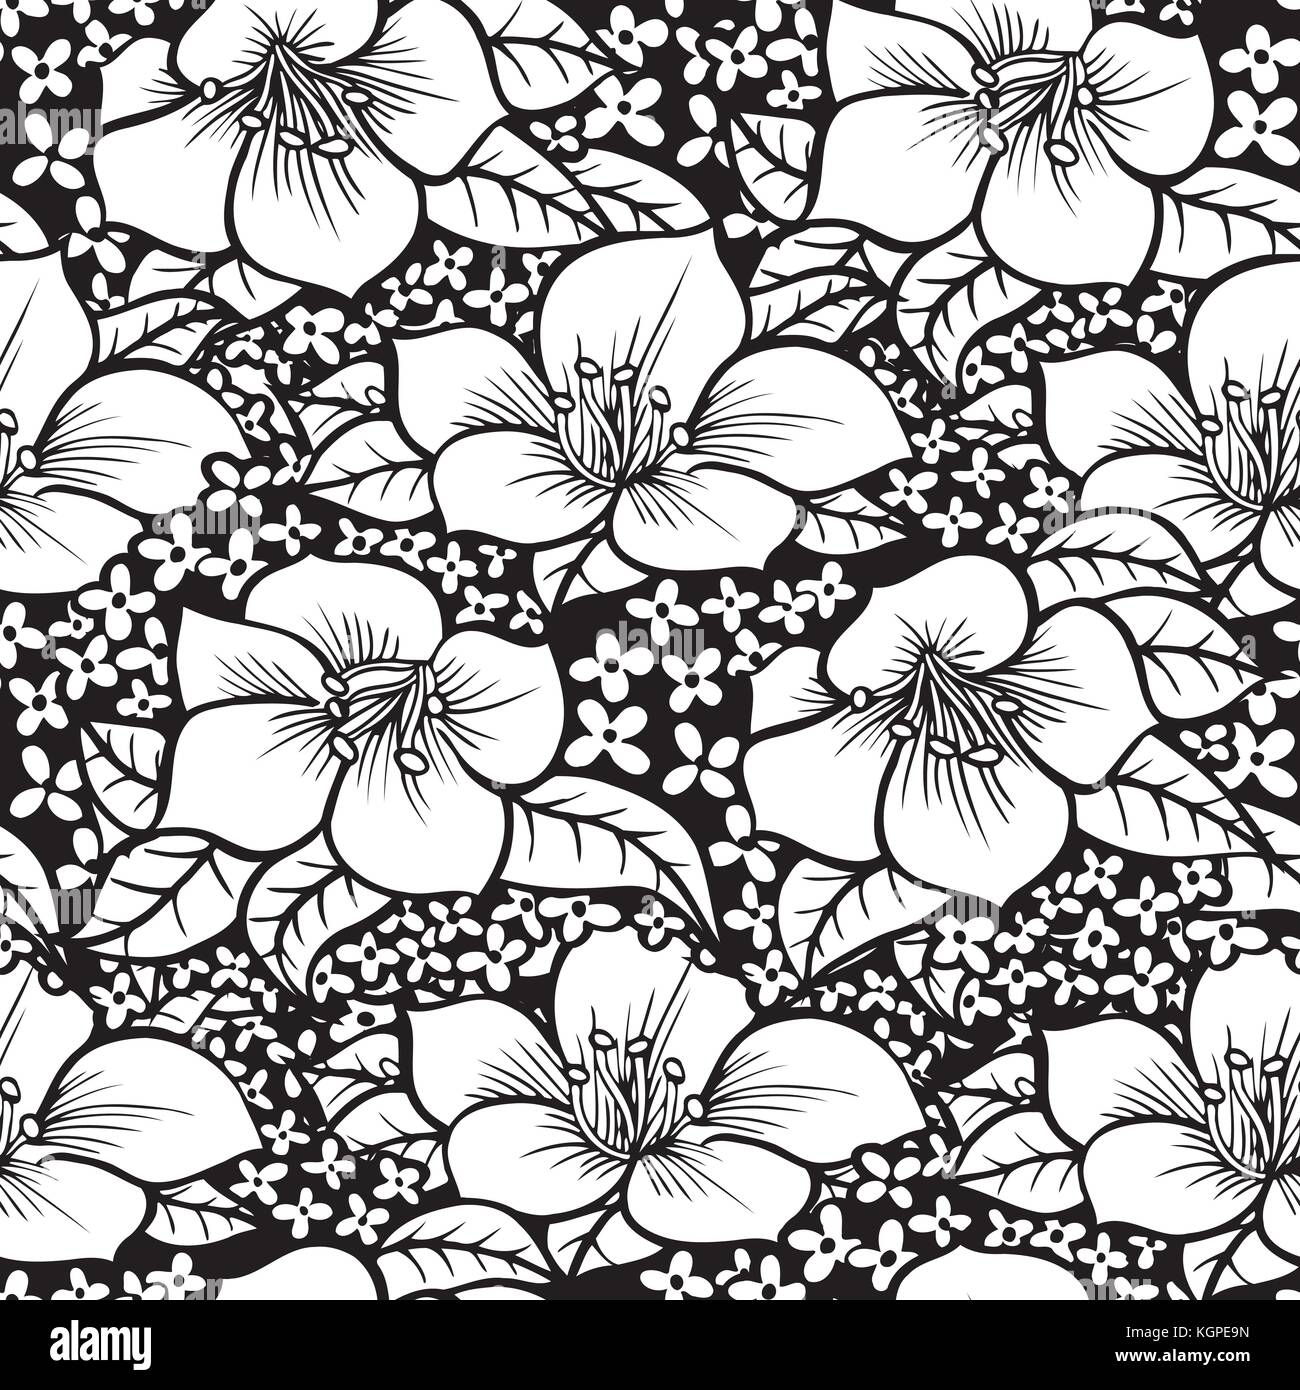 Black And White Monochrome Flower Digital Artwork Seamless Stock